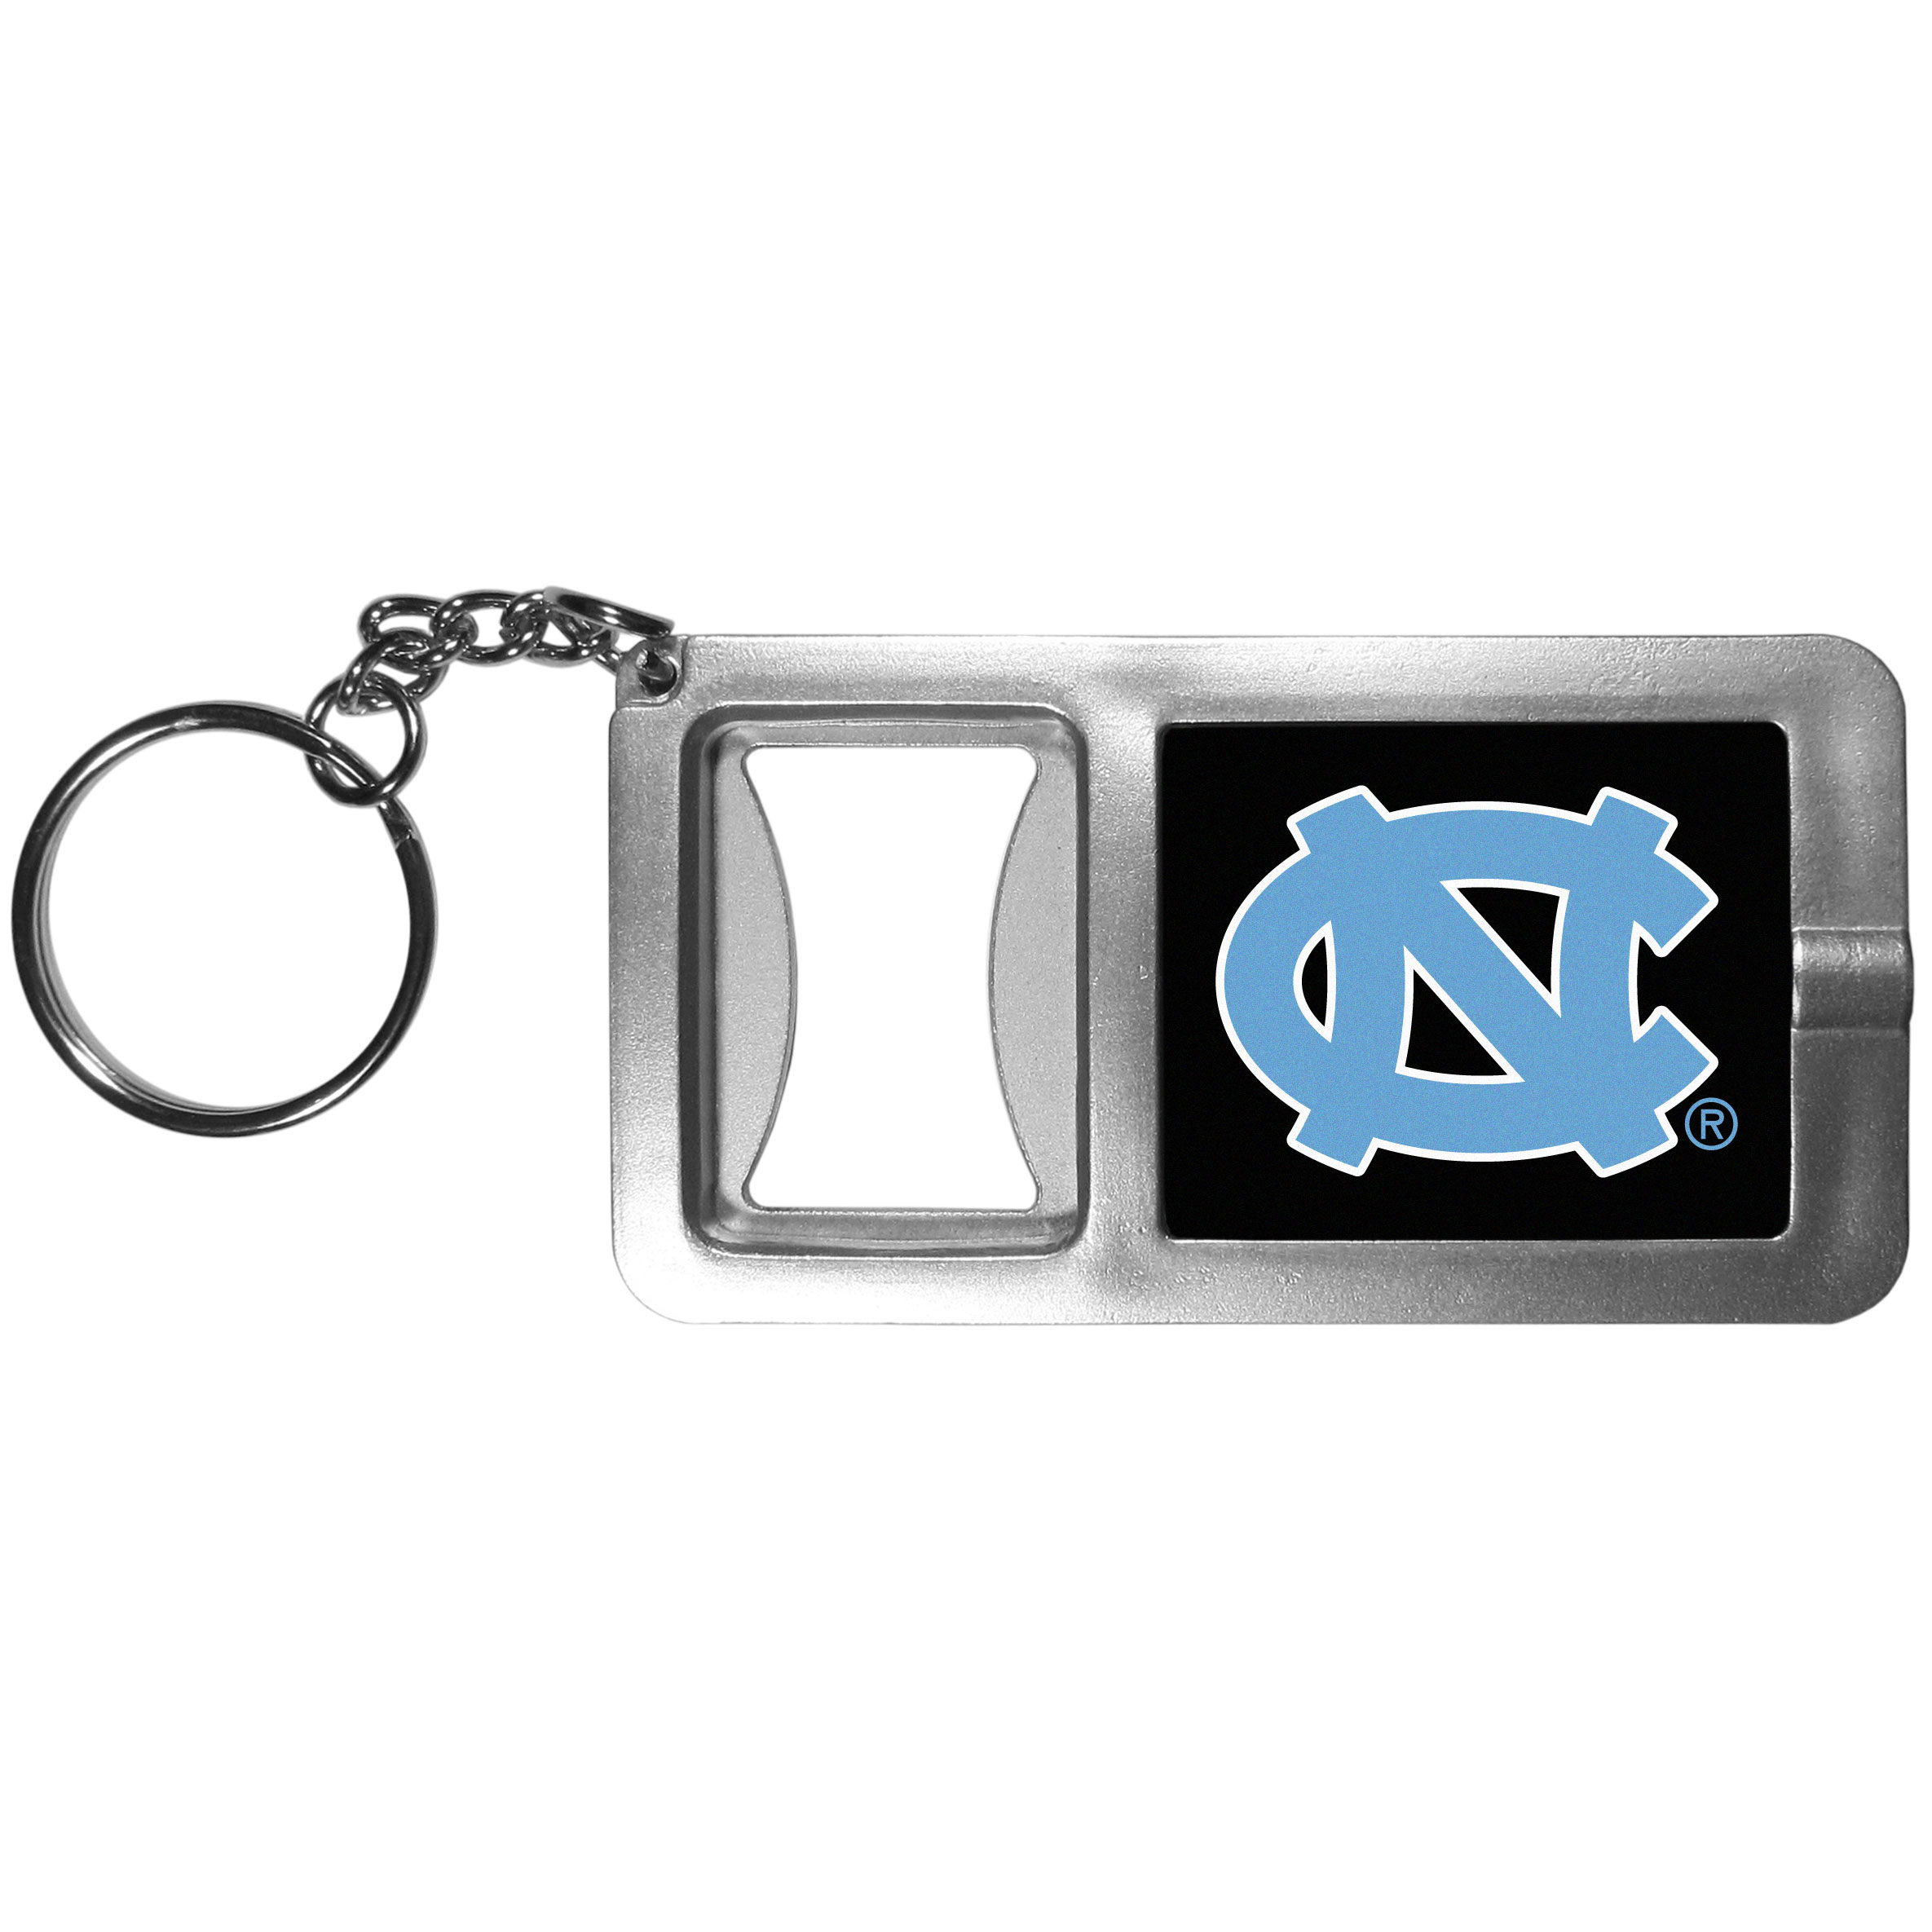 N. Carolina Tar Heels Flashlight Key Chain with Bottle Opener - Never be without light with our N. Carolina Tar Heels flashlight keychain that features a handy bottle opener feature. This versatile key chain is perfect for camping and travel and is a great way to show off your team pride!